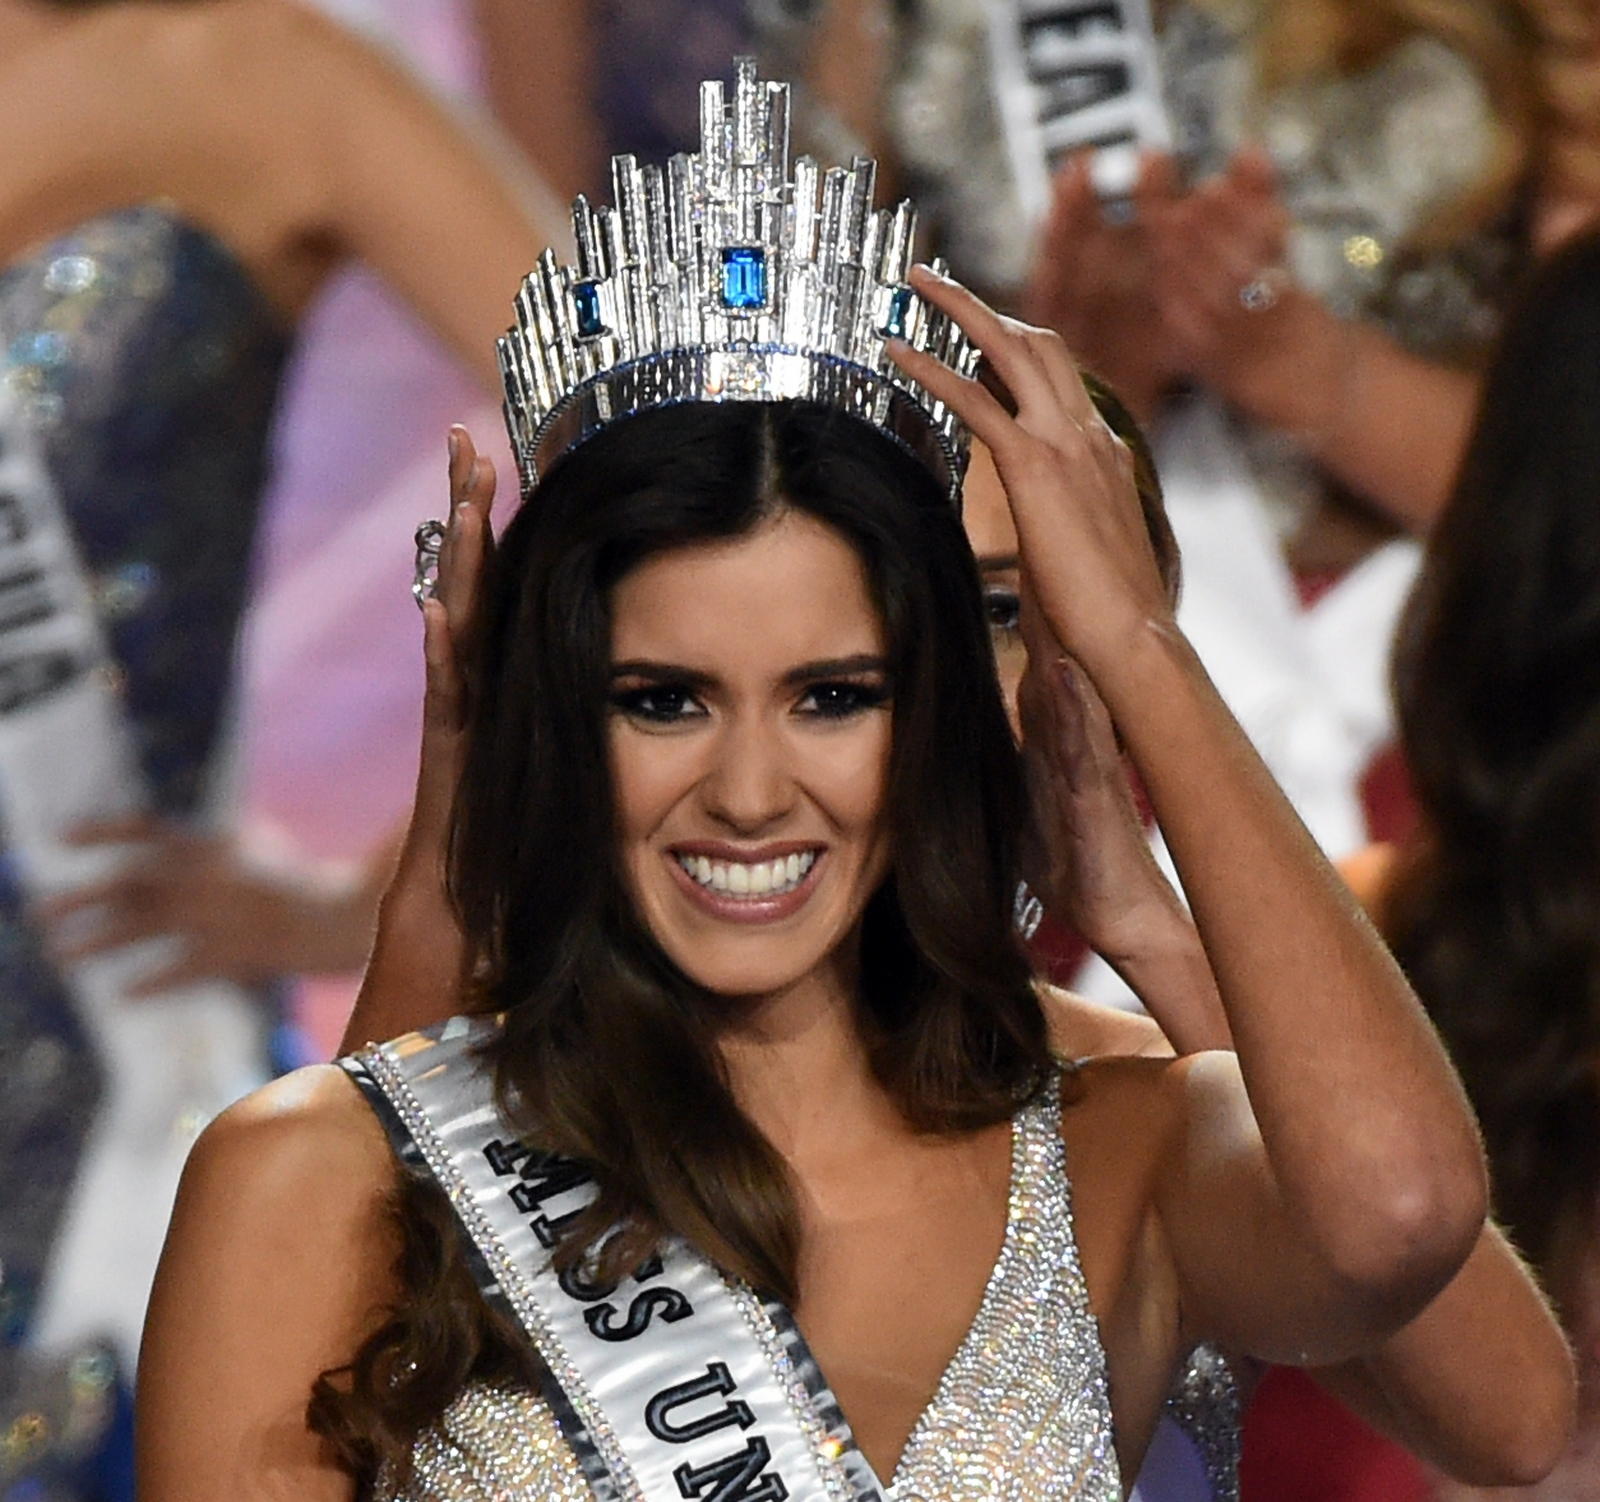 Miss Universe Paulina Vega. The FARC rebe group has taken her up on her expressed desire to help bring about peace in her country. (Getty)